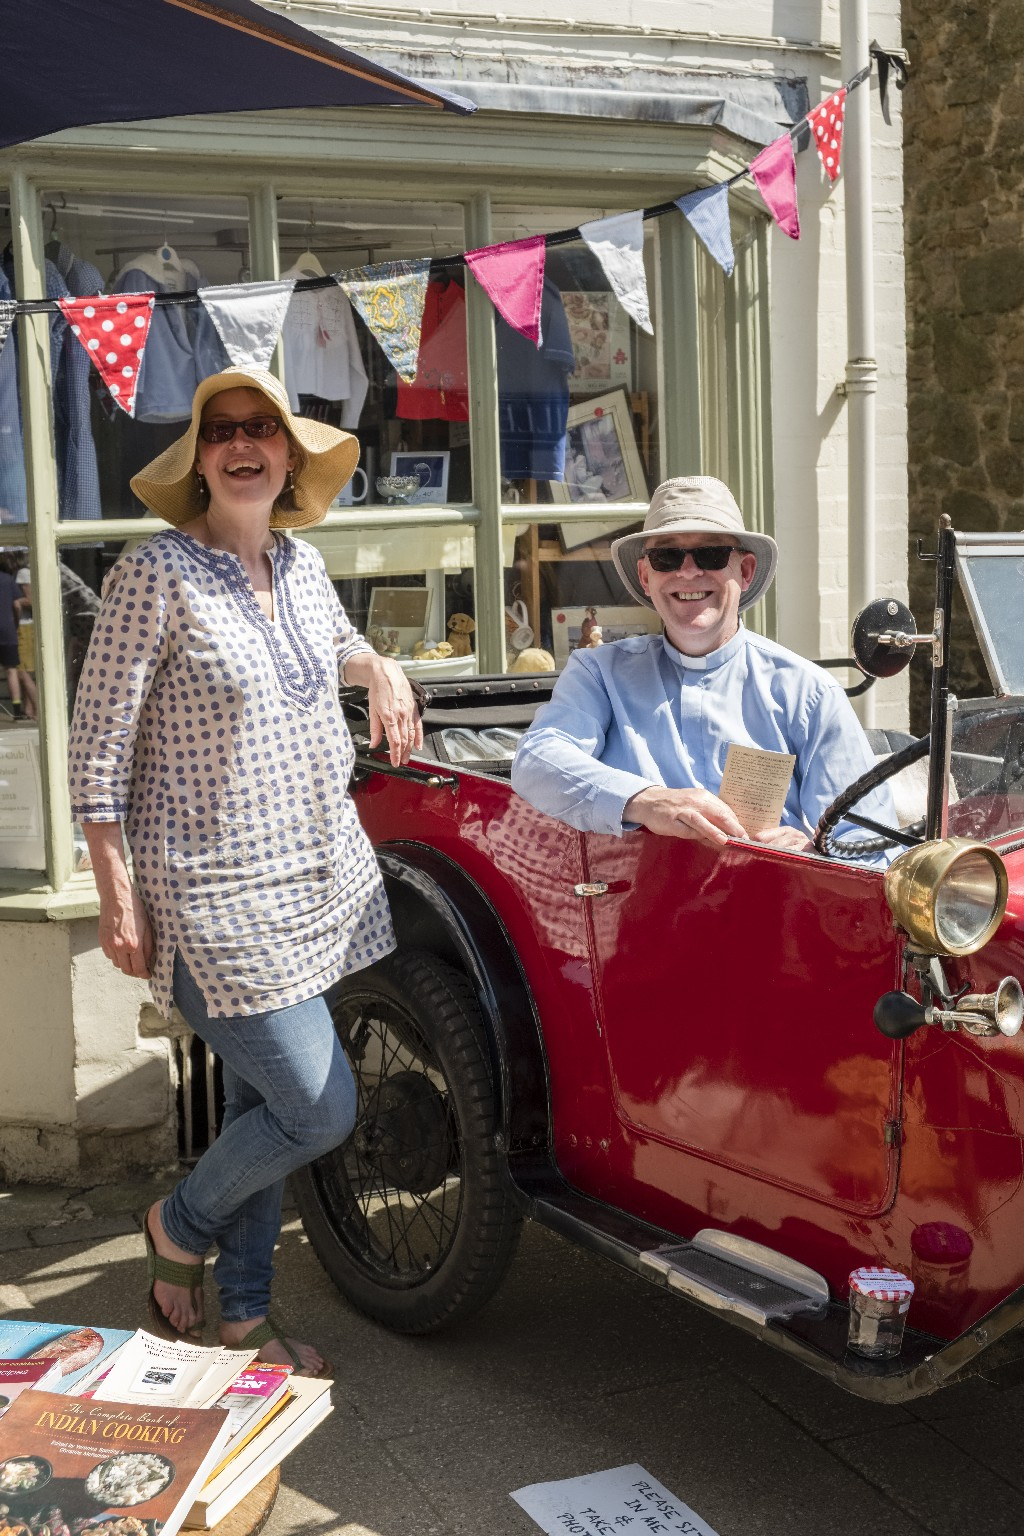 Presteigne Food and Flower Festival